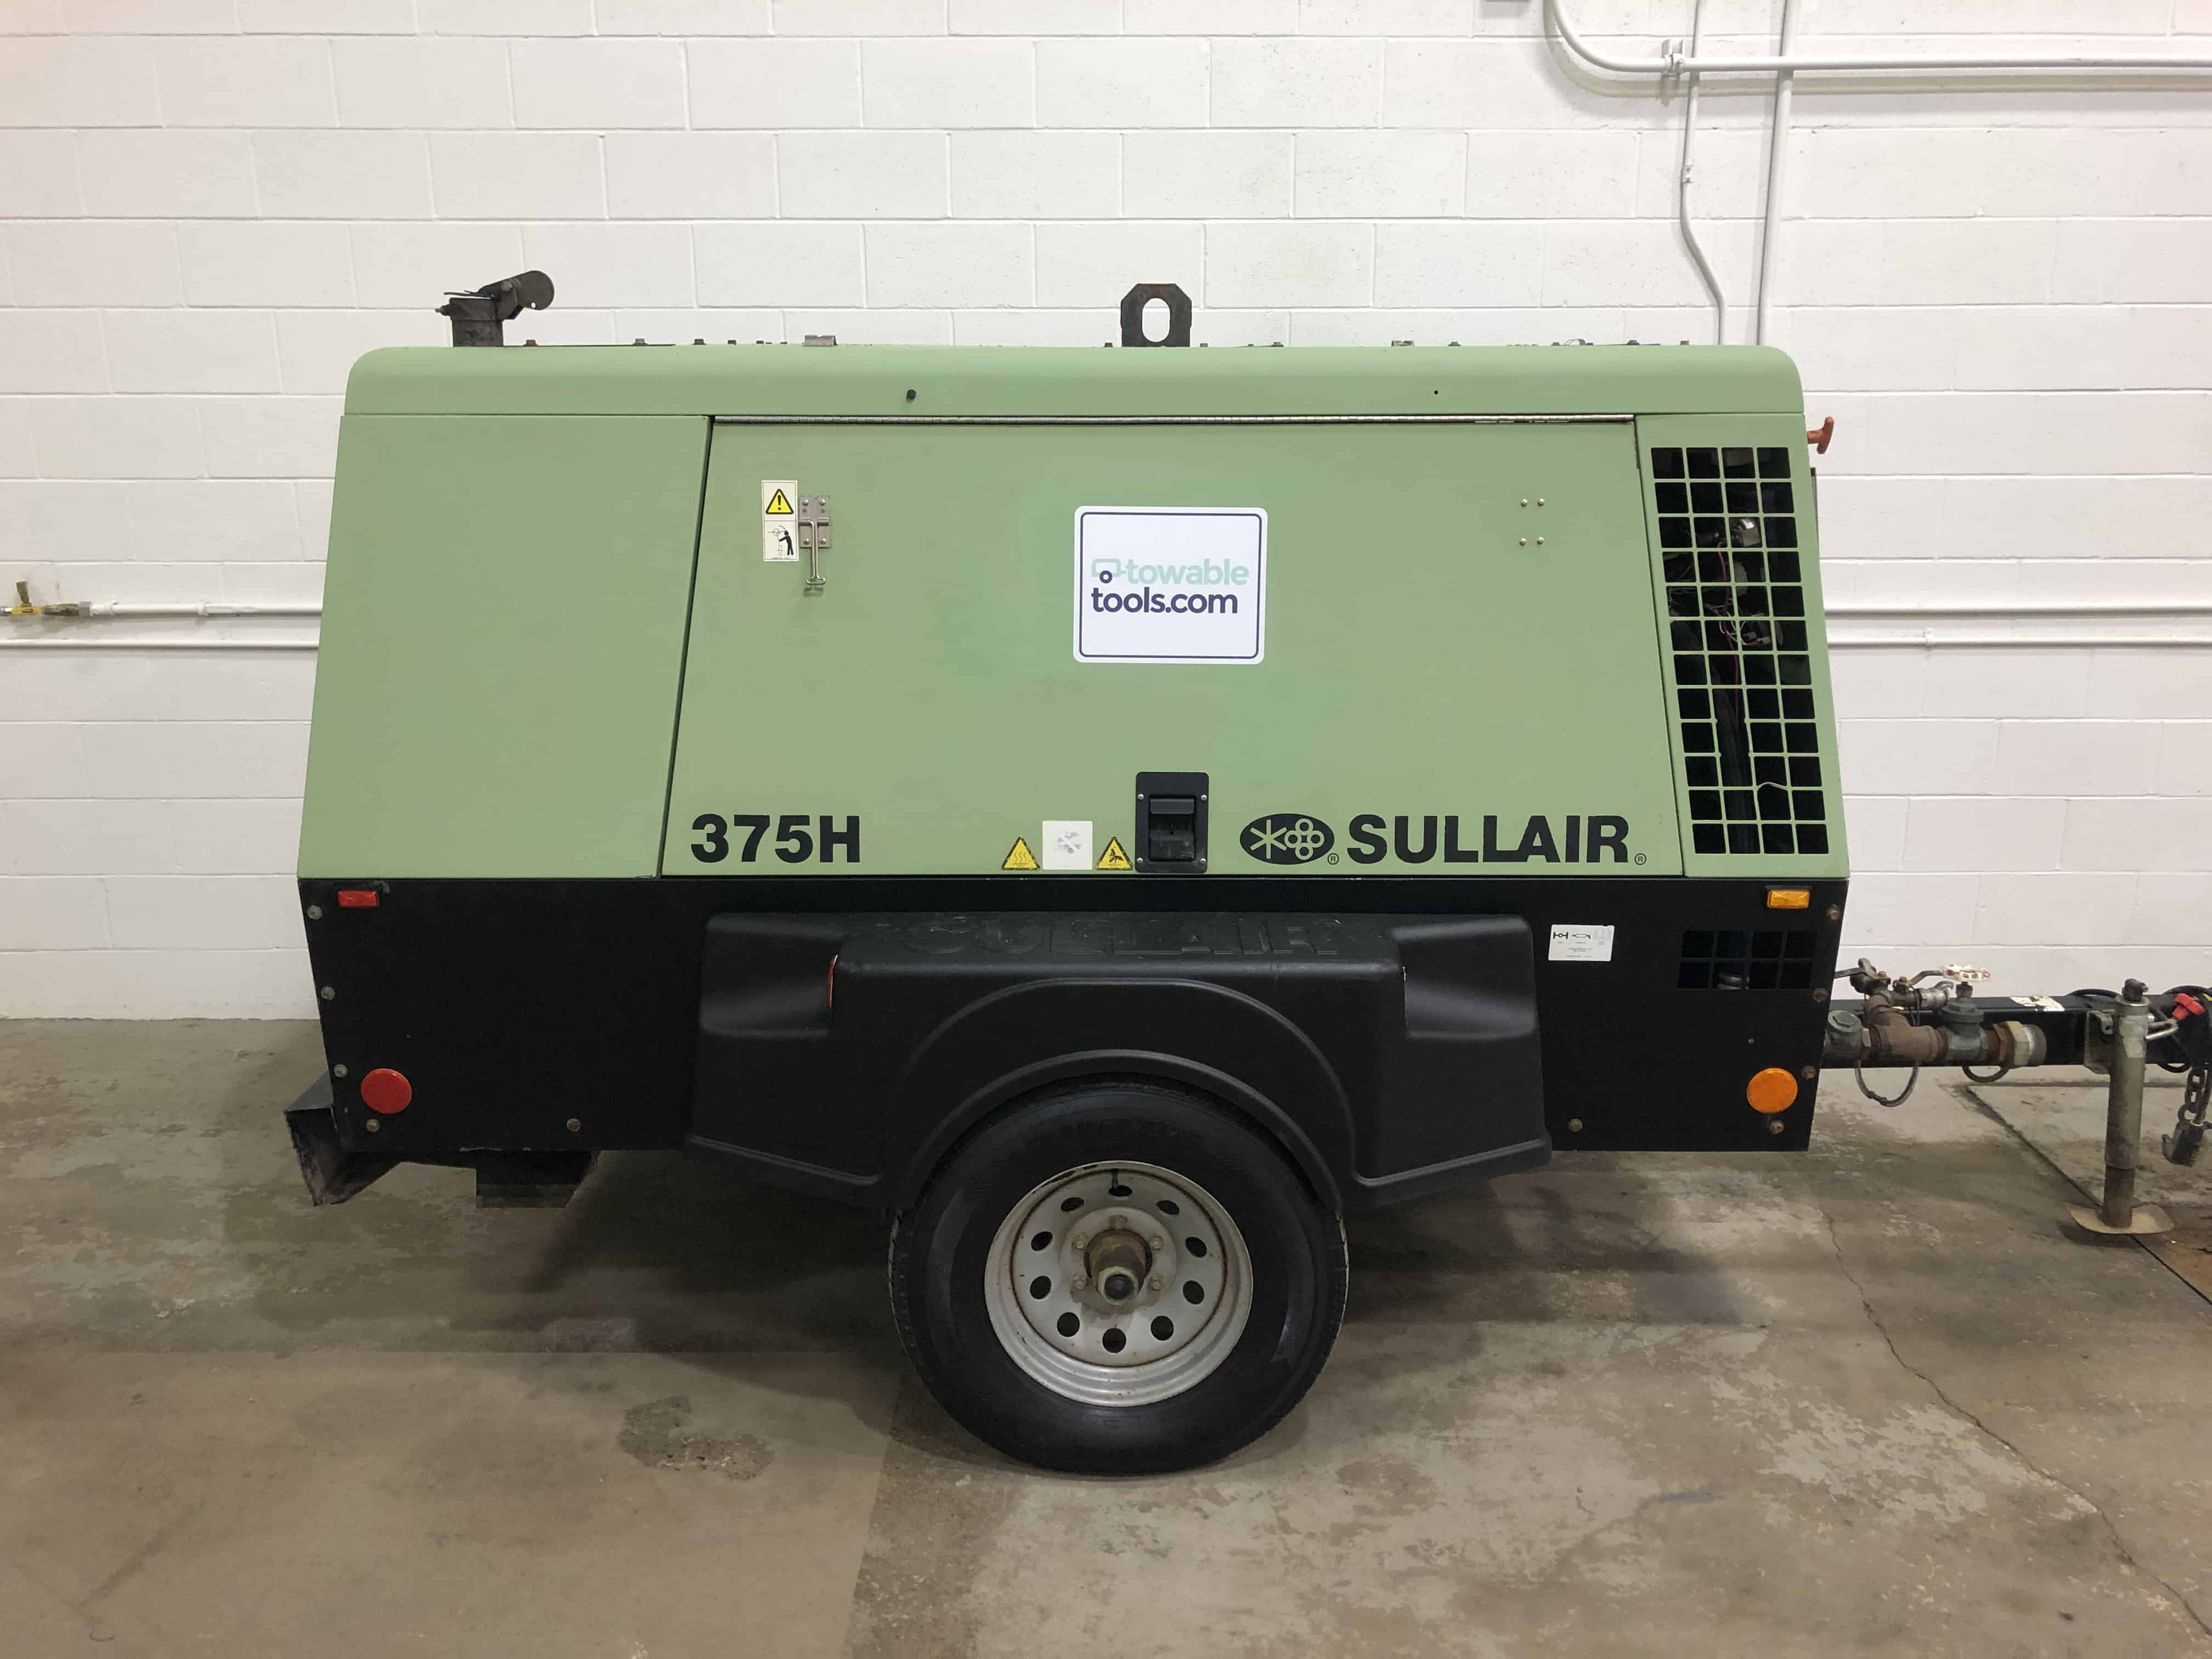 375 cfm sandblasting air compressor for sale at Towable Tools